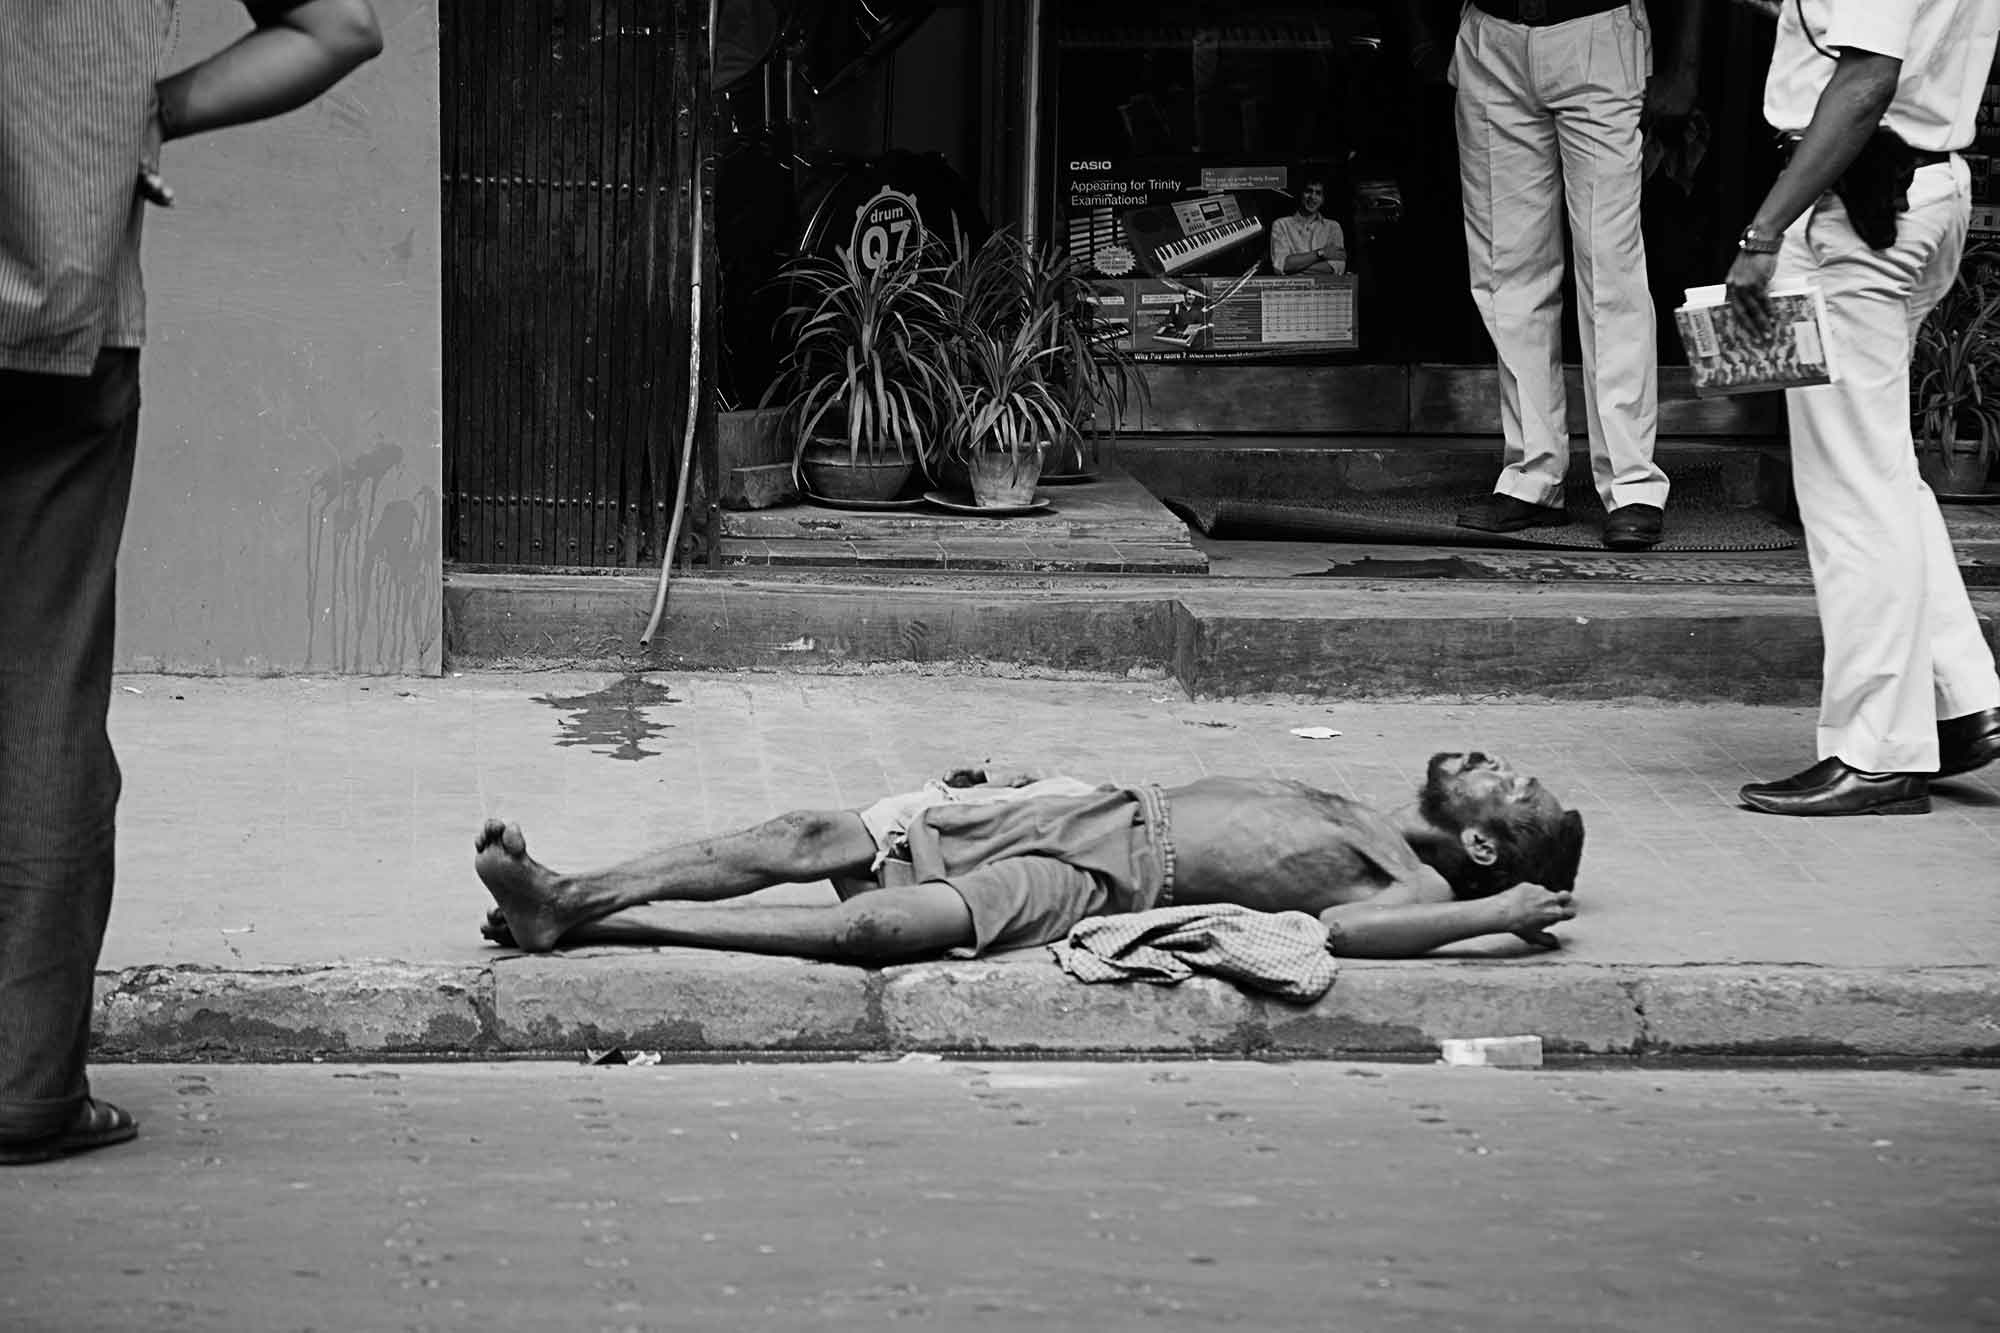 dying-man-streets-kolkata-india